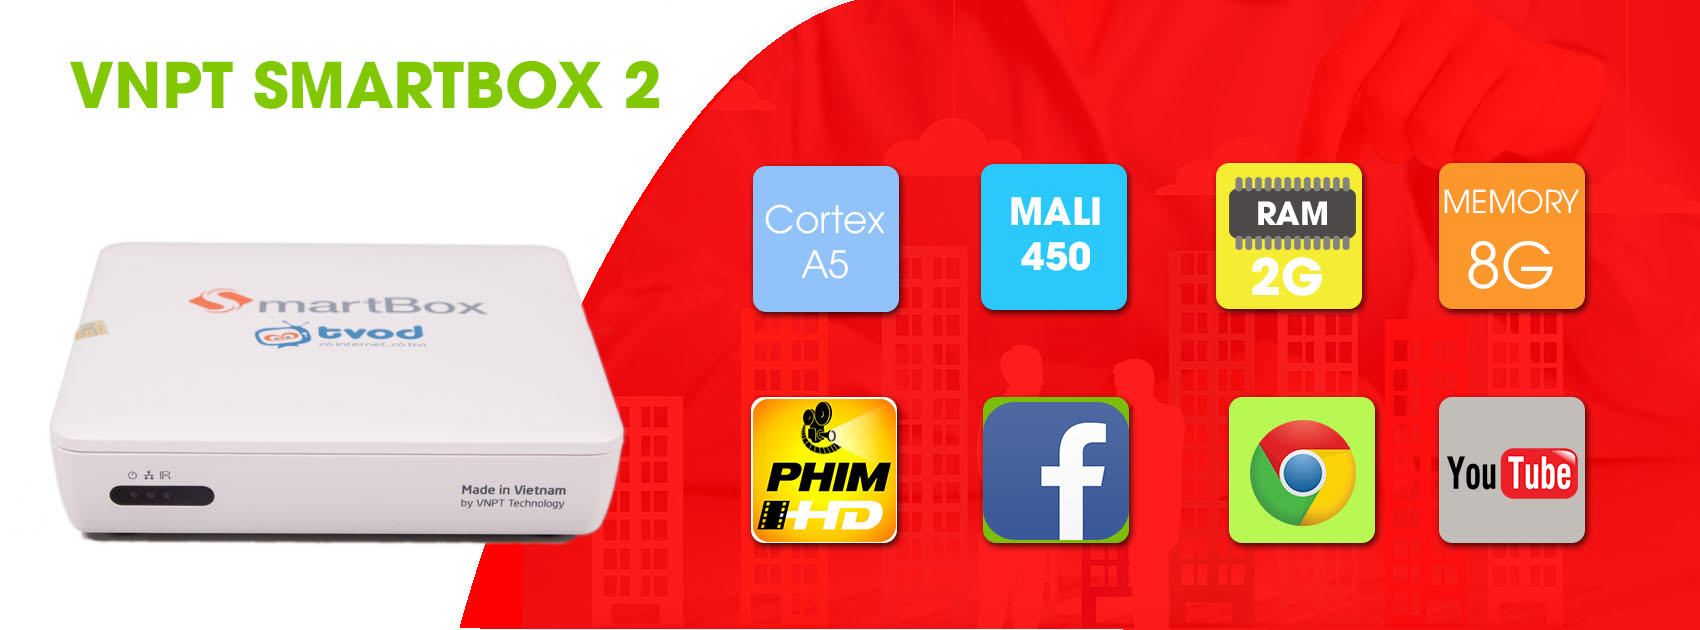 VNPT Smartbox 2 4